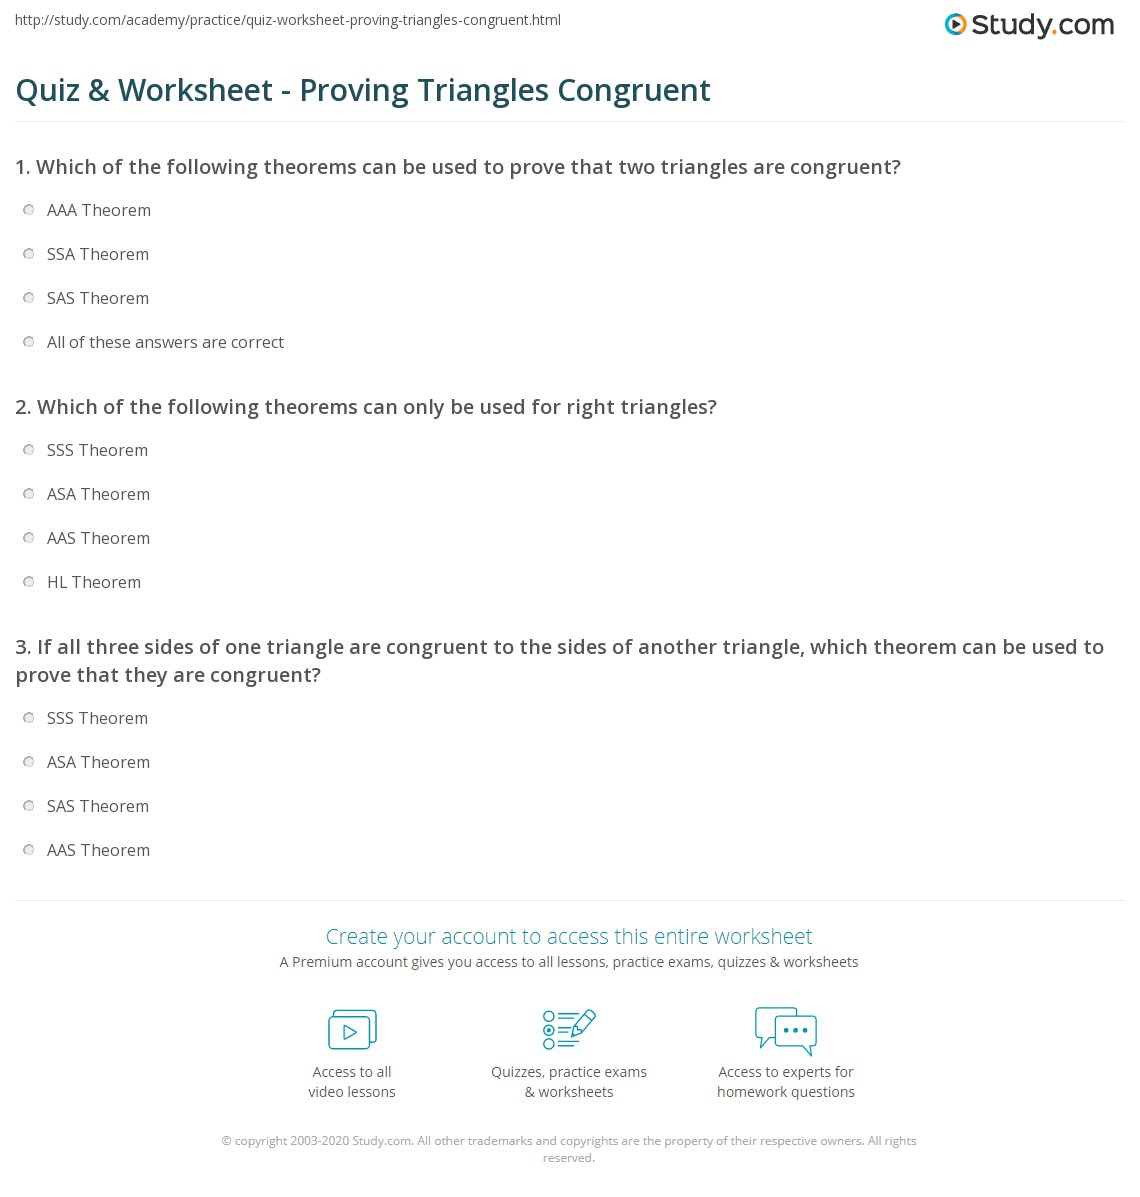 Quiz Worksheet Proving Triangles Congruent Study Com